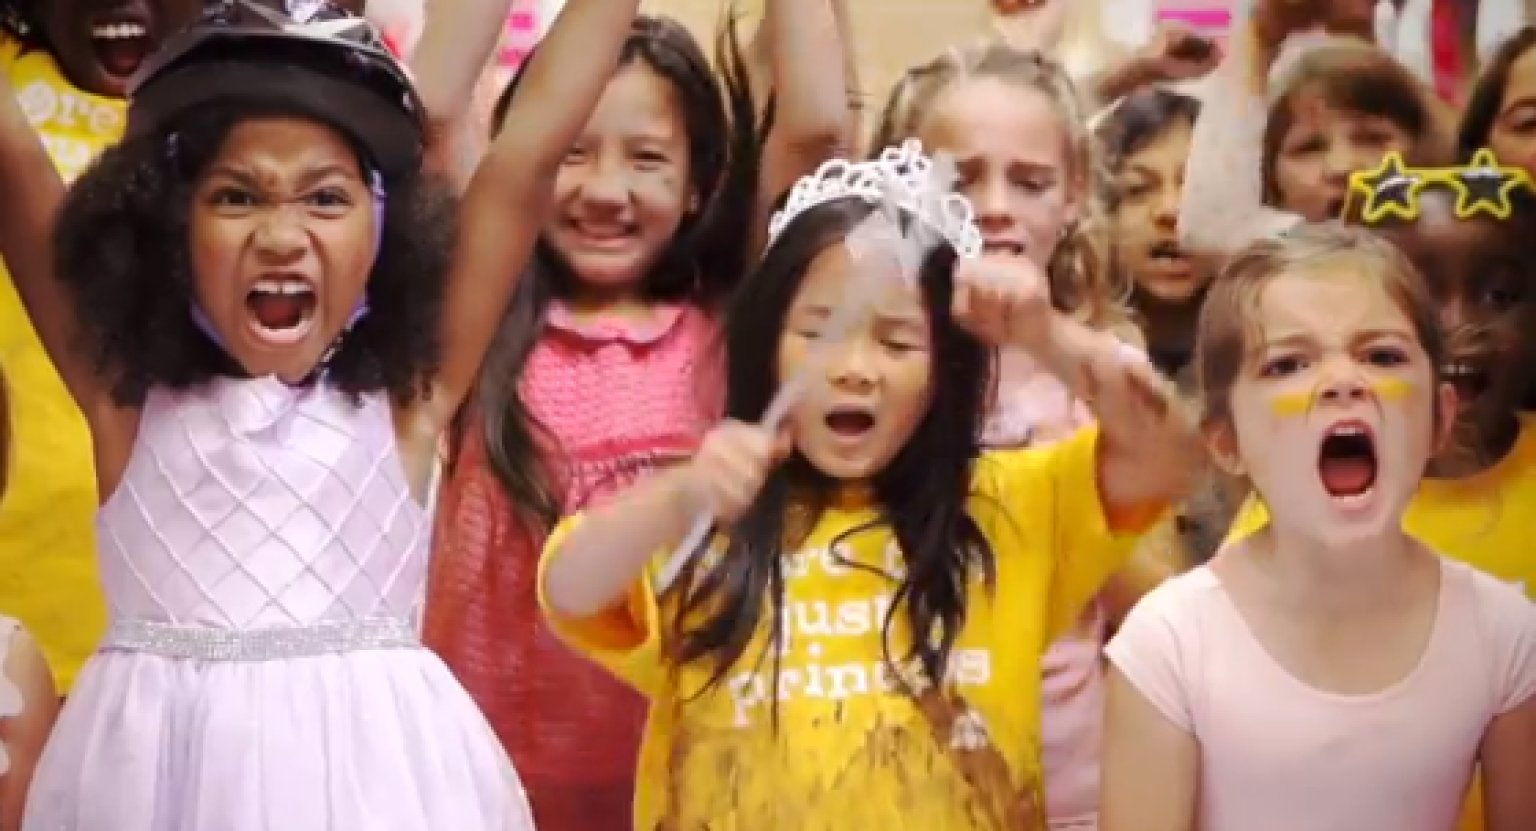 WATCH: Little Girls Crush Gender Stereotypes In Under 2 Minutes